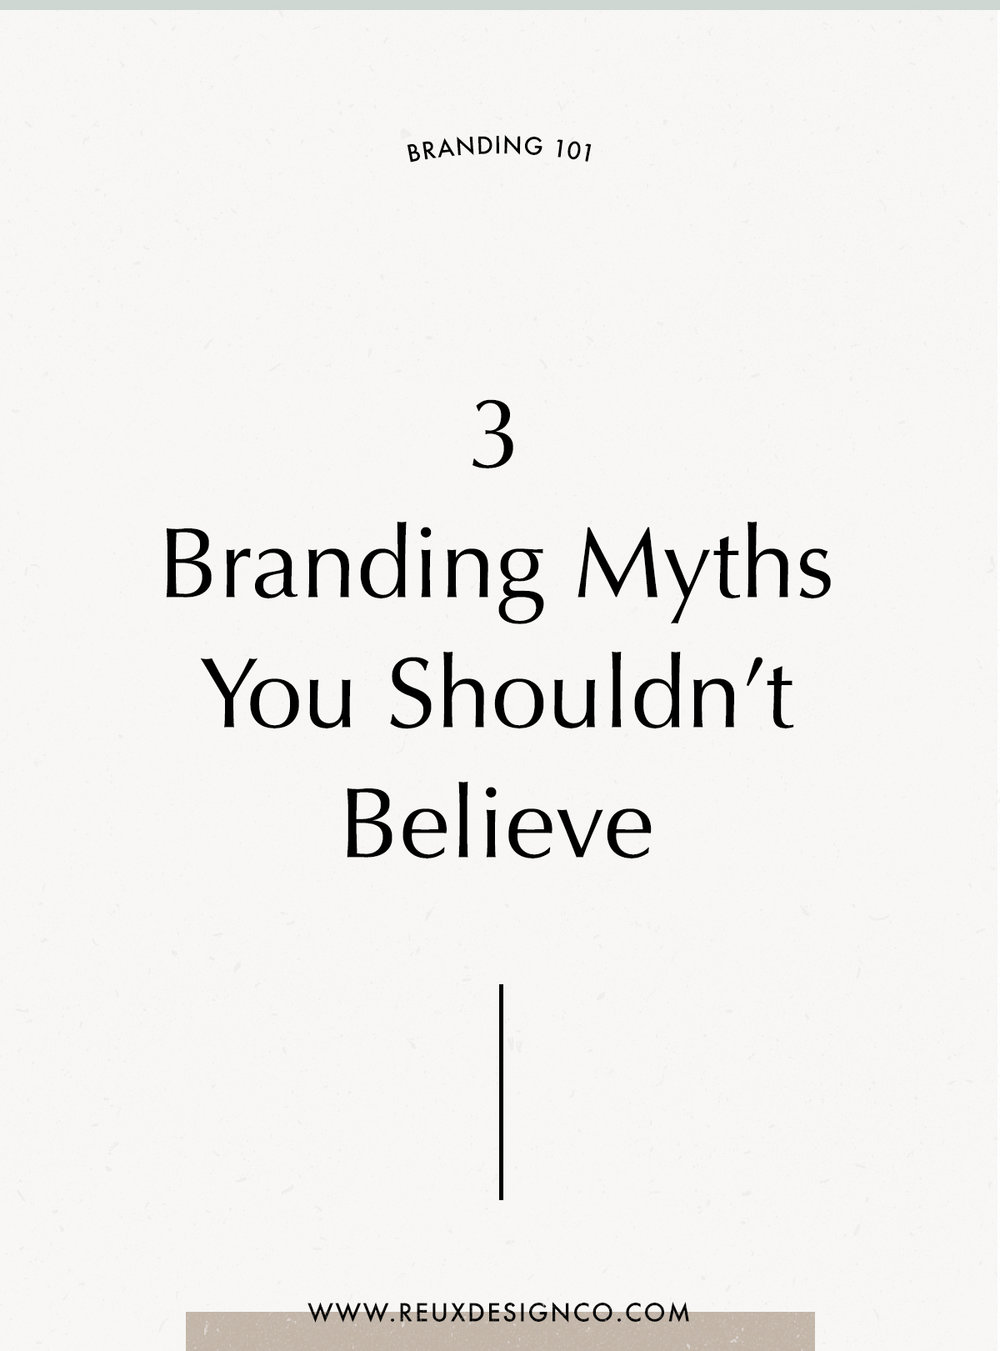 3 Branding and Small Business myths that you should NOT believe | 3 common misconceptions about branding your intentional, creative, holistic business | Reux Design Co.